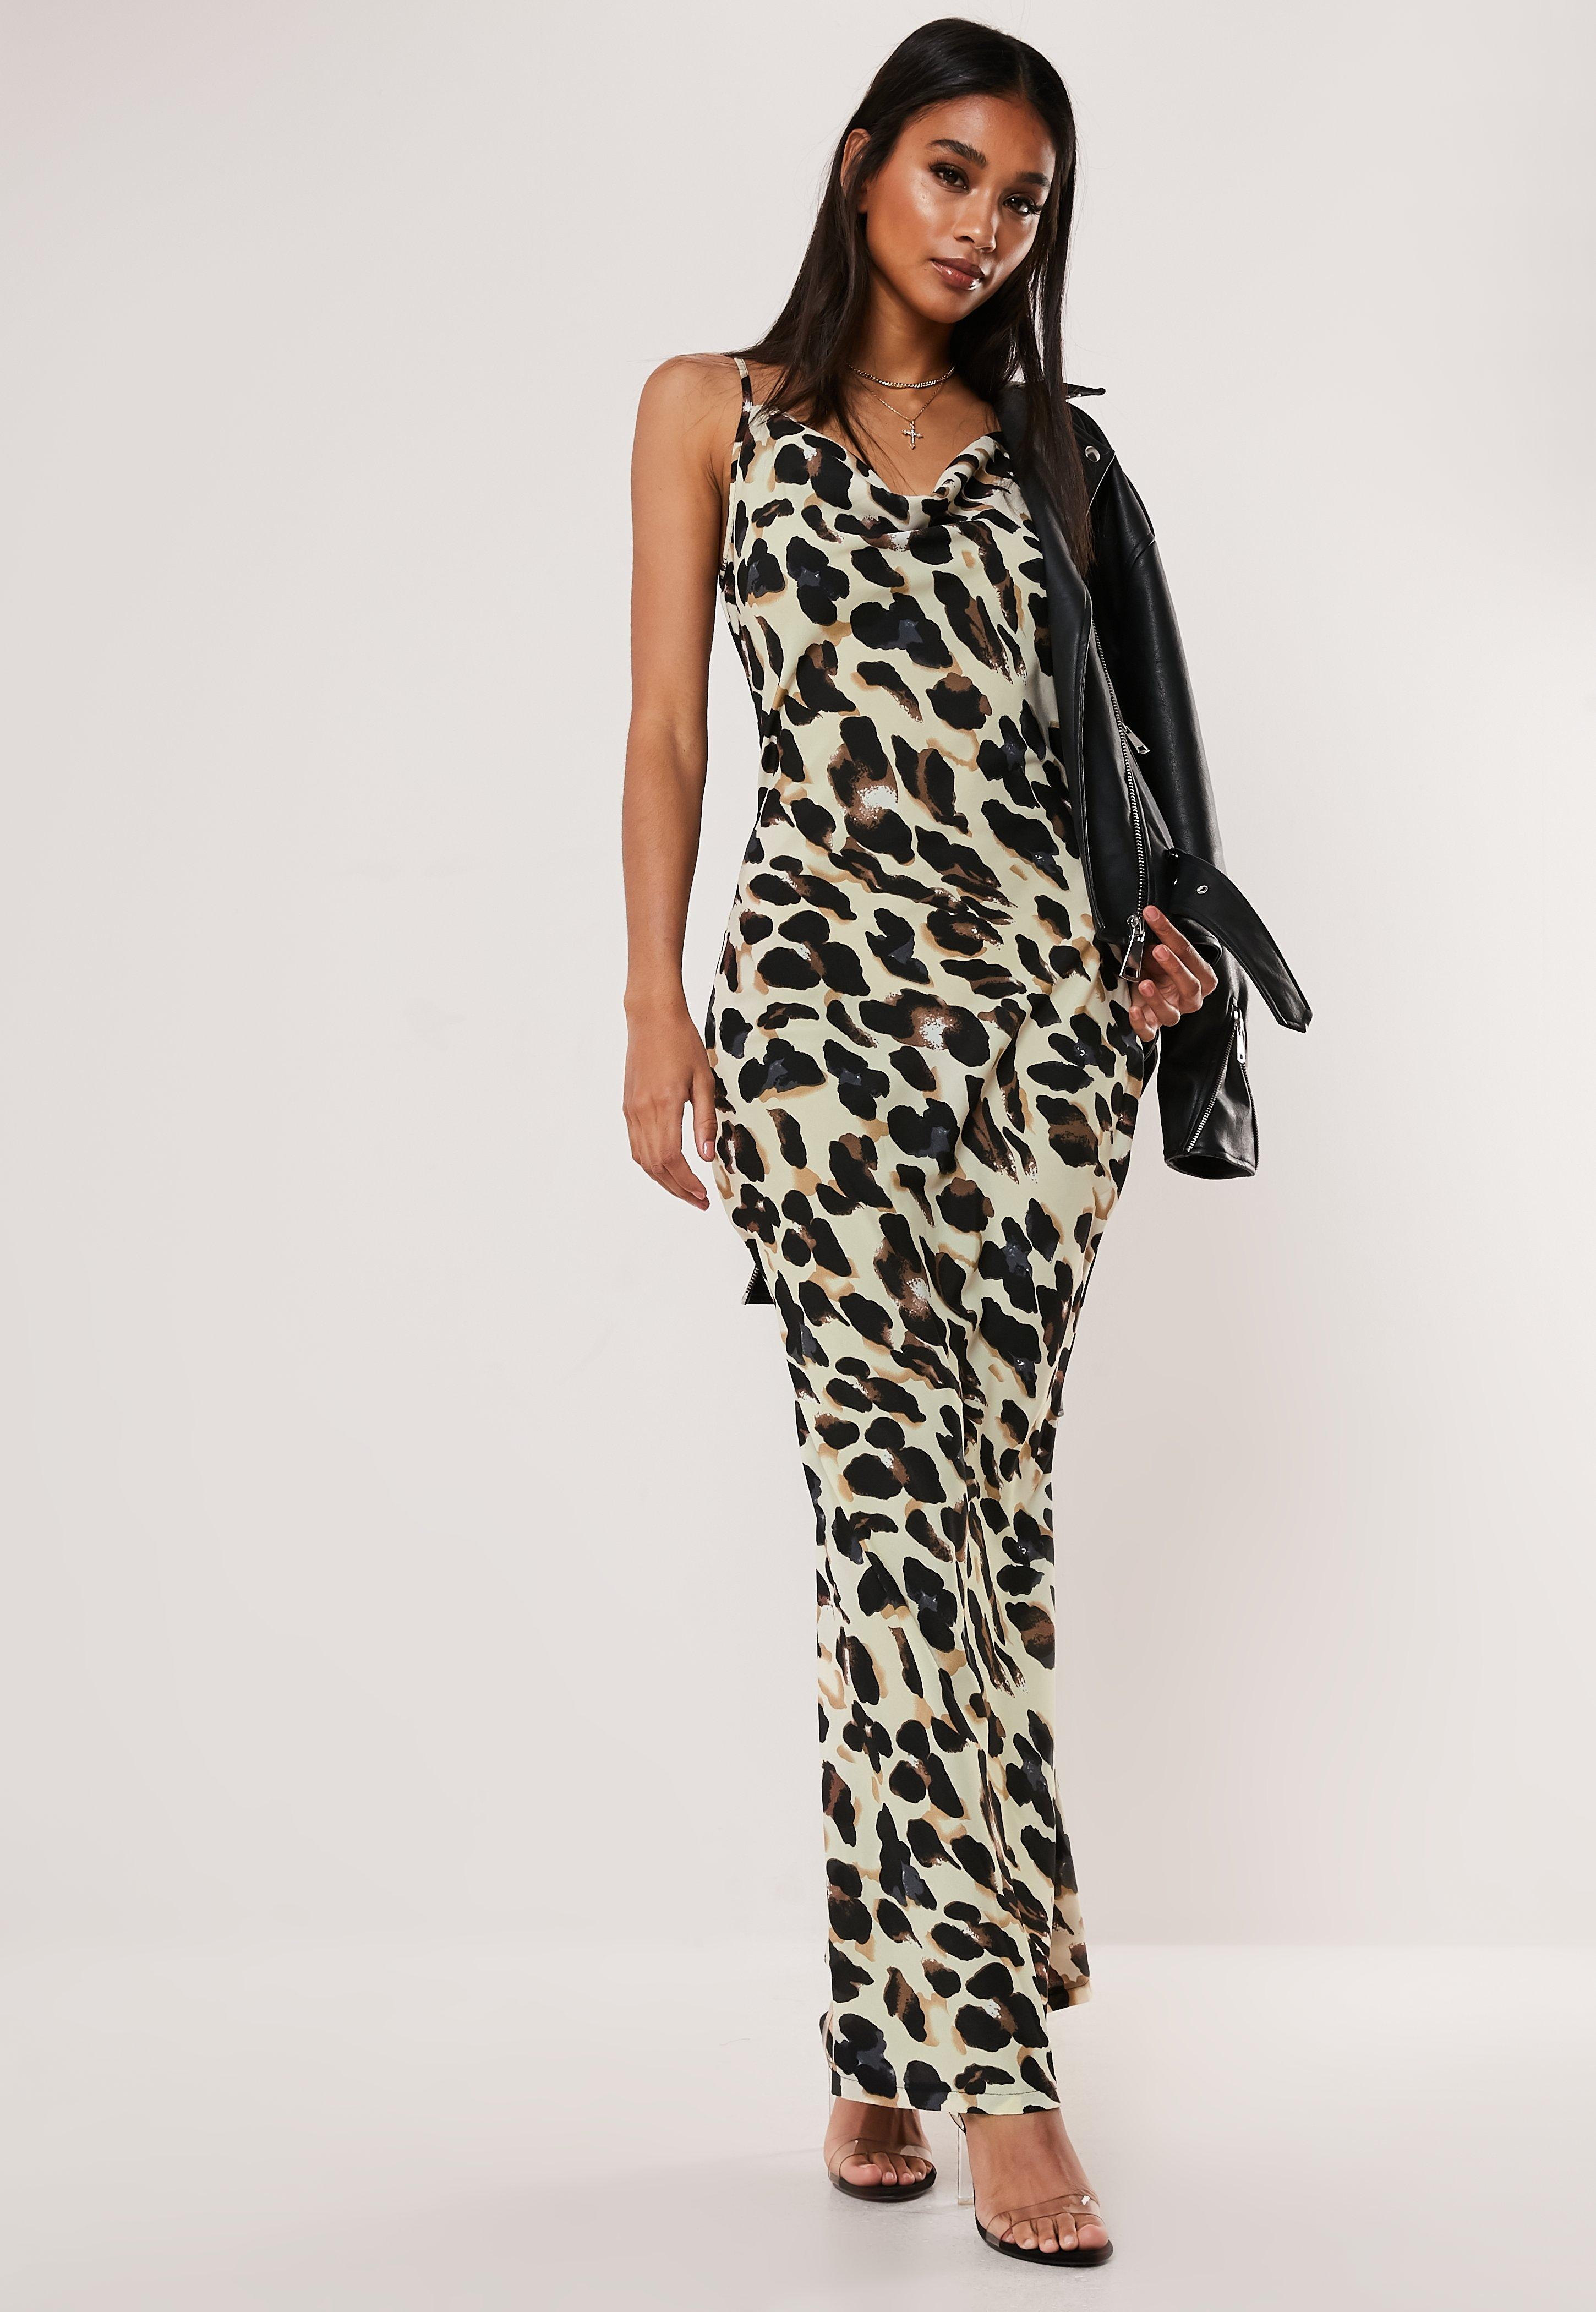 524a70c6abad Animal Print Clothing | Snake & Leopard Print Dresses - Missguided